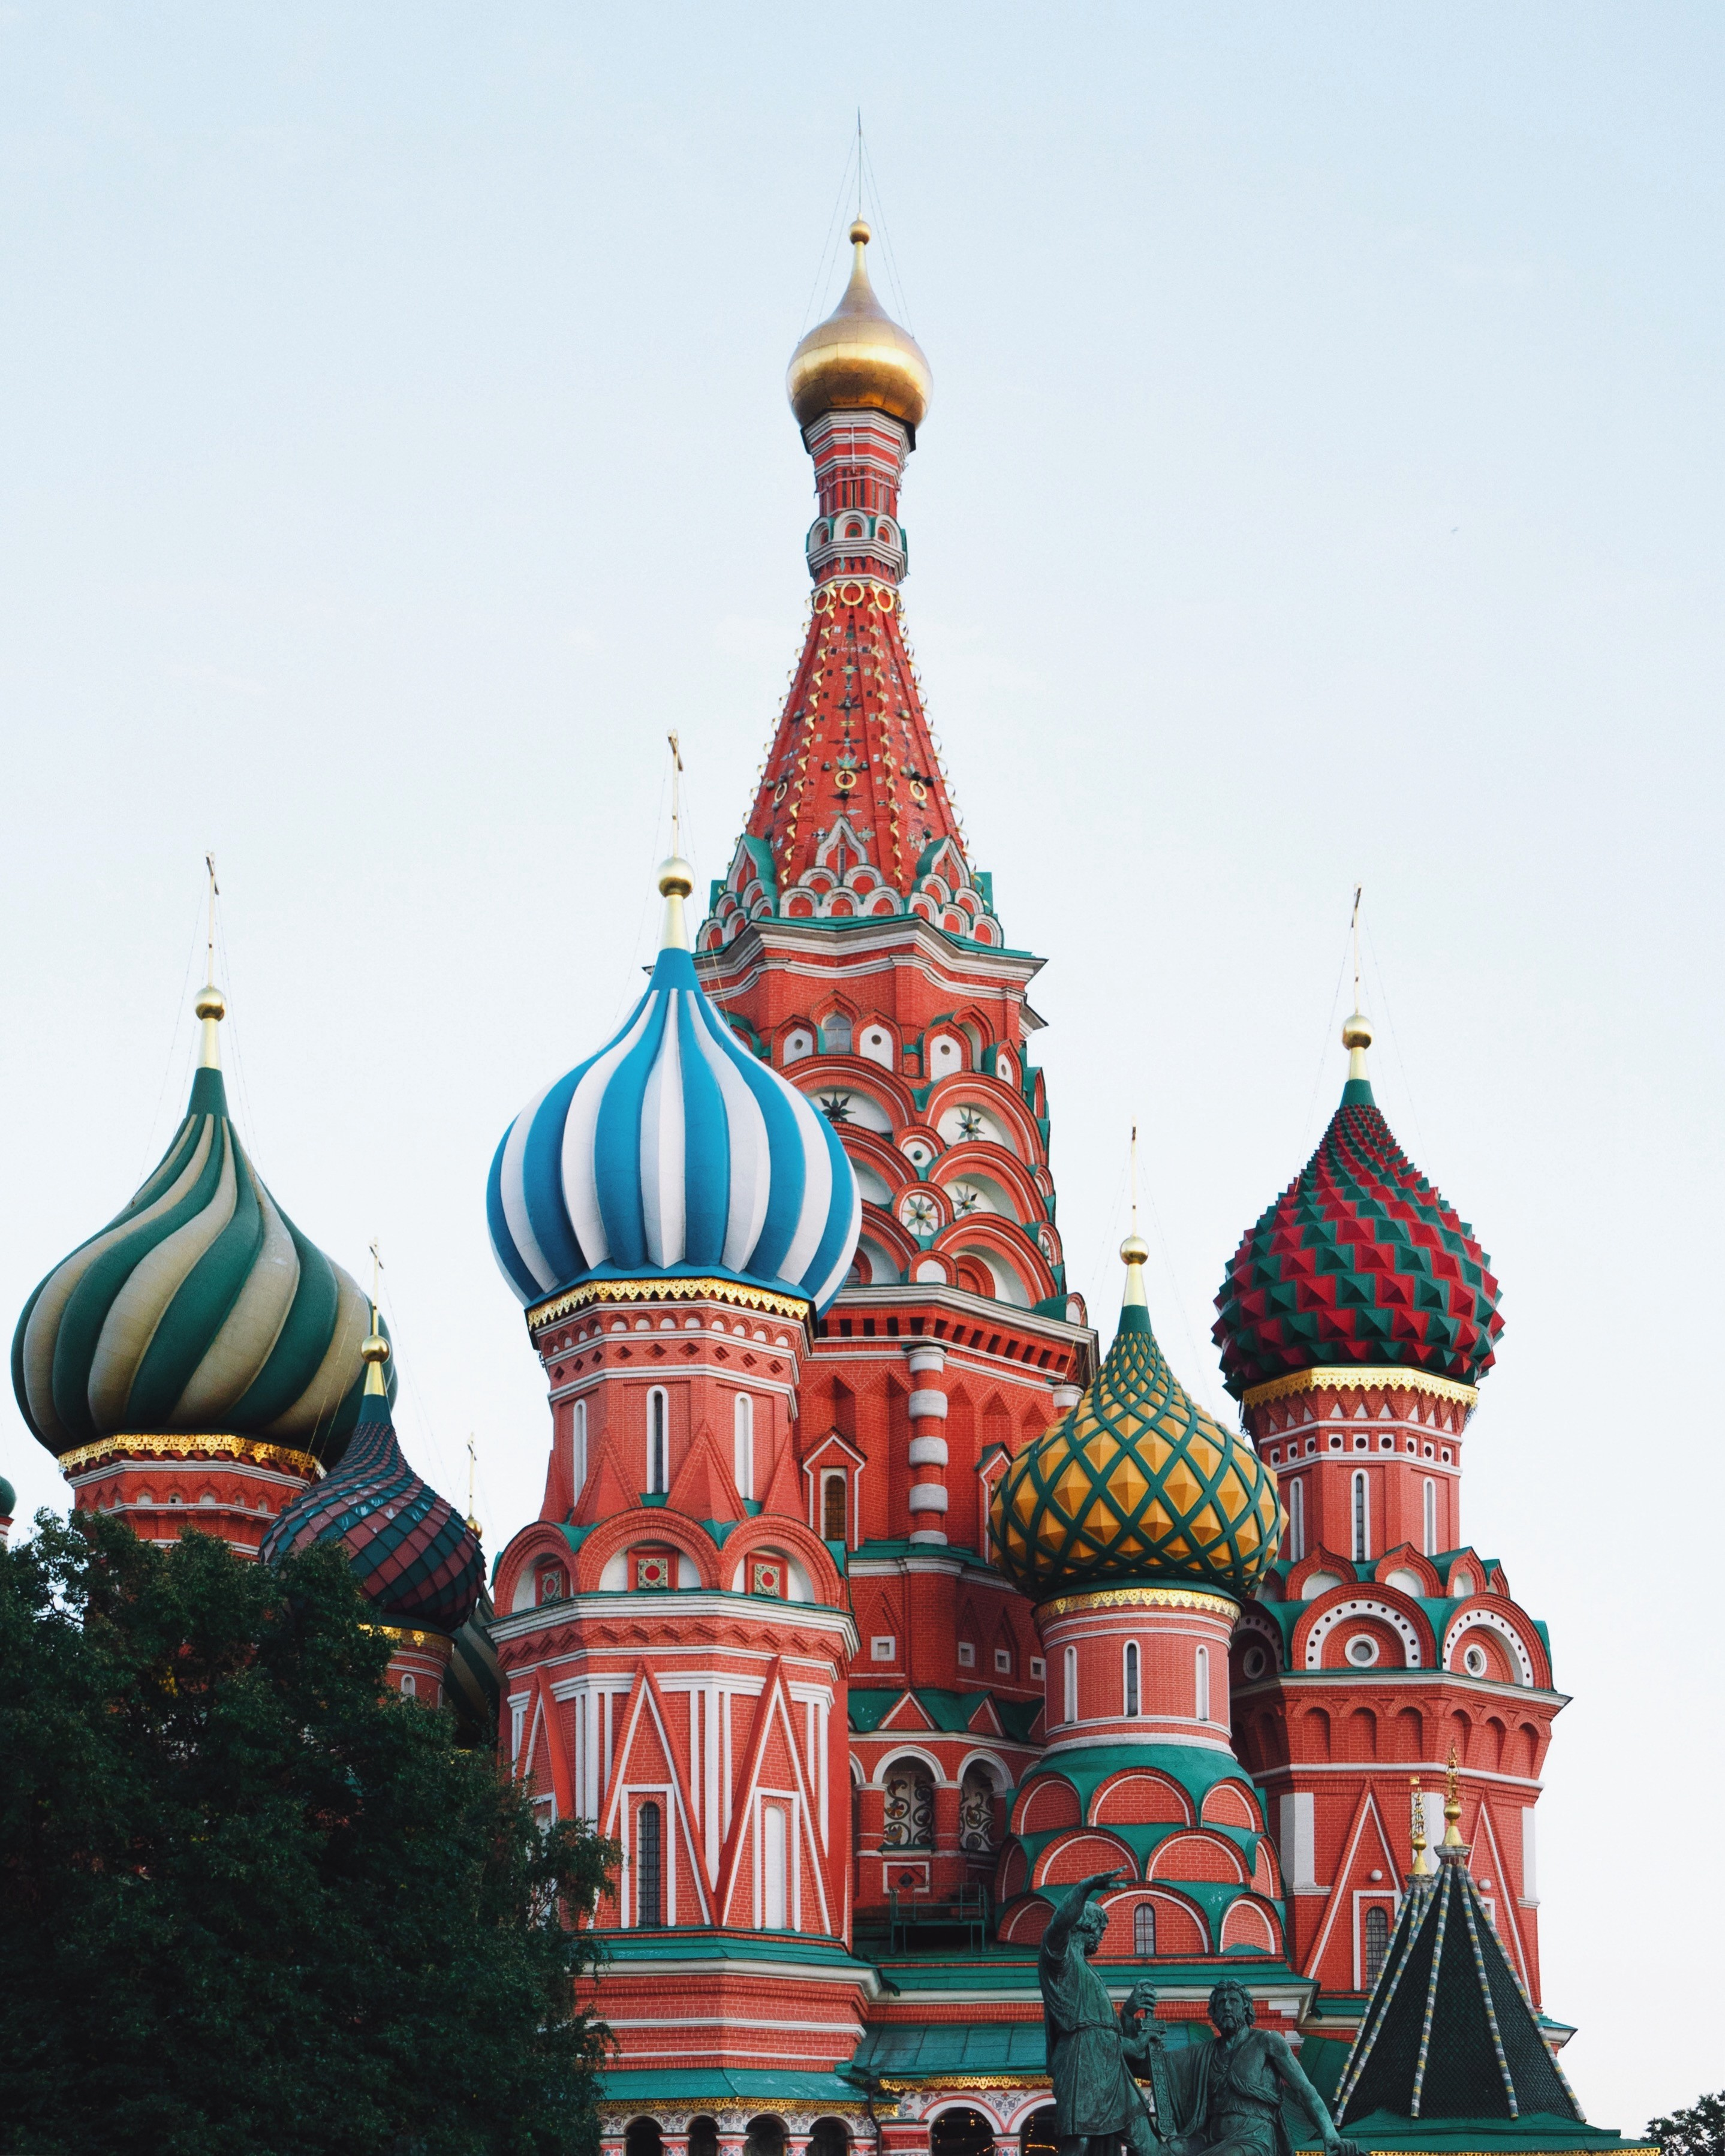 St. Basil's Basilica in Moscow